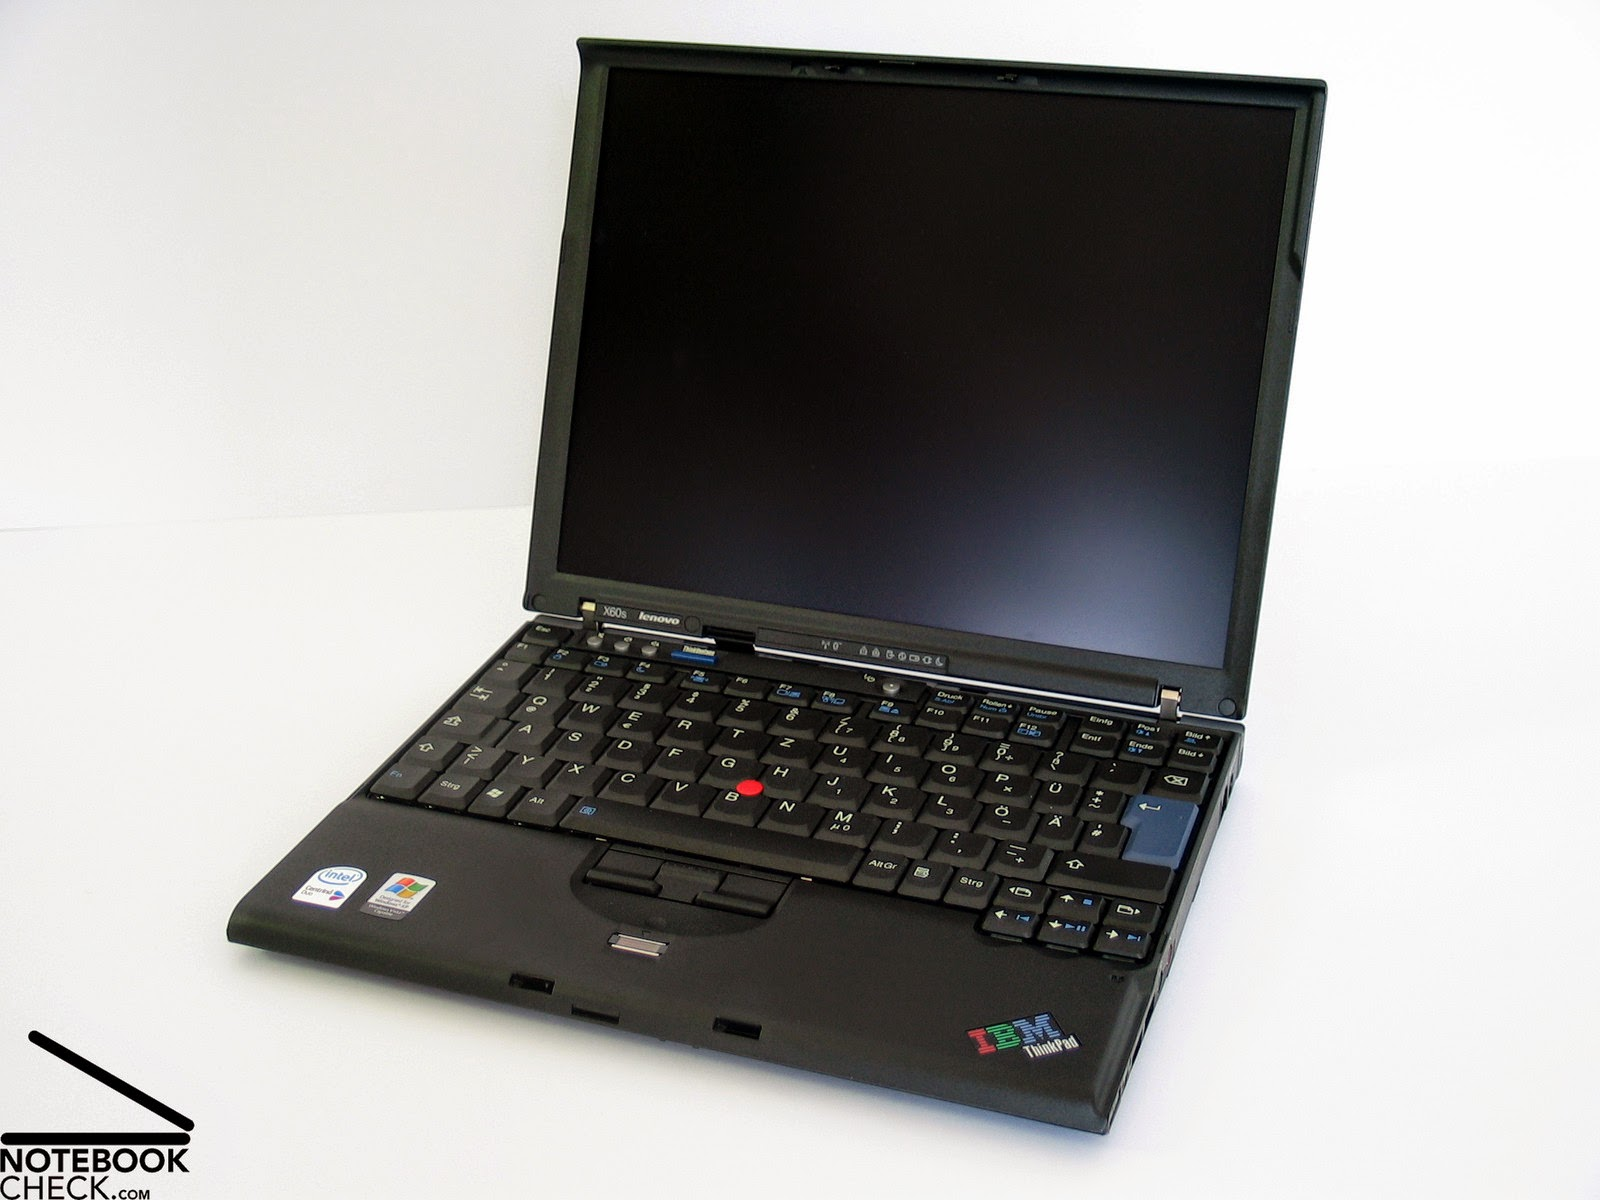 Ibm Thinkpad R51 Sound Drivers For Xp Free Download